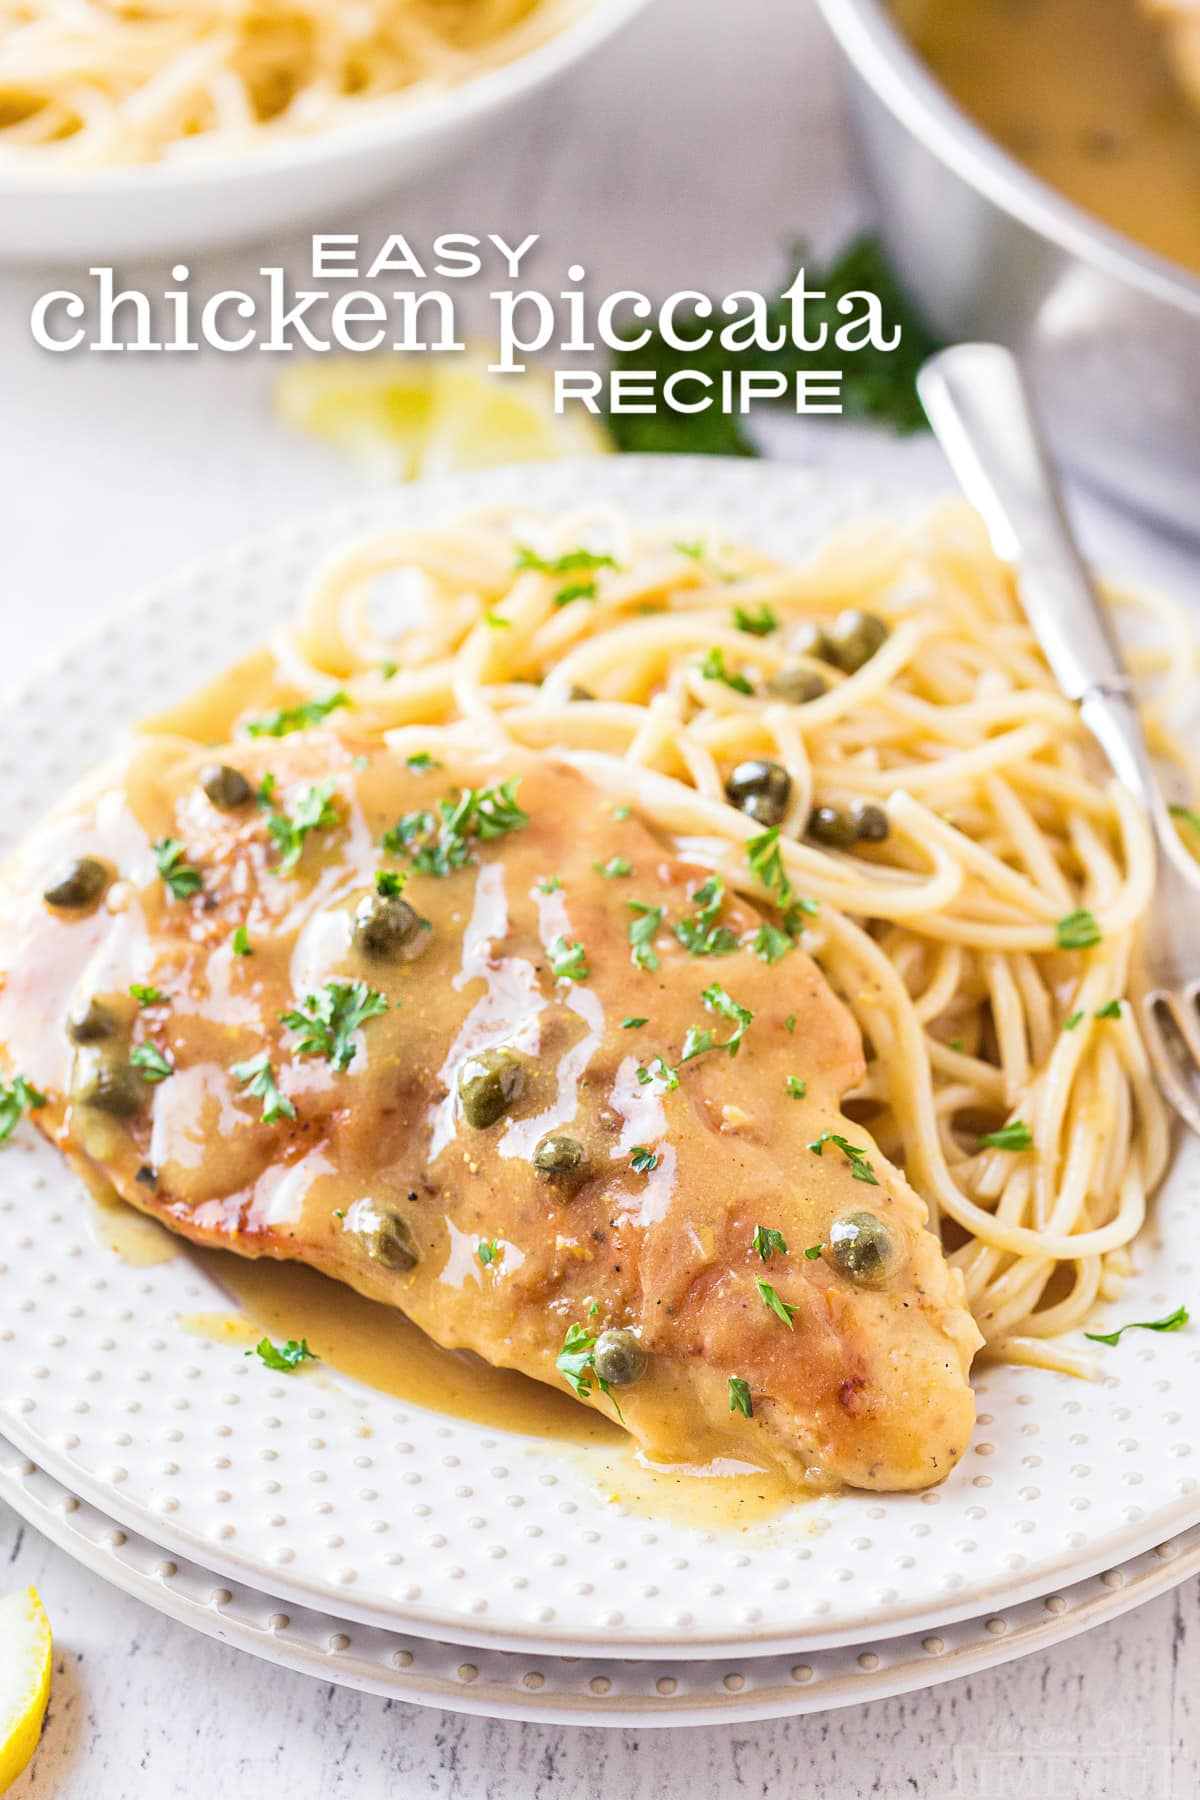 easy chicken piccata recipe plated on a white plate with spaghetti and garnished with parsley